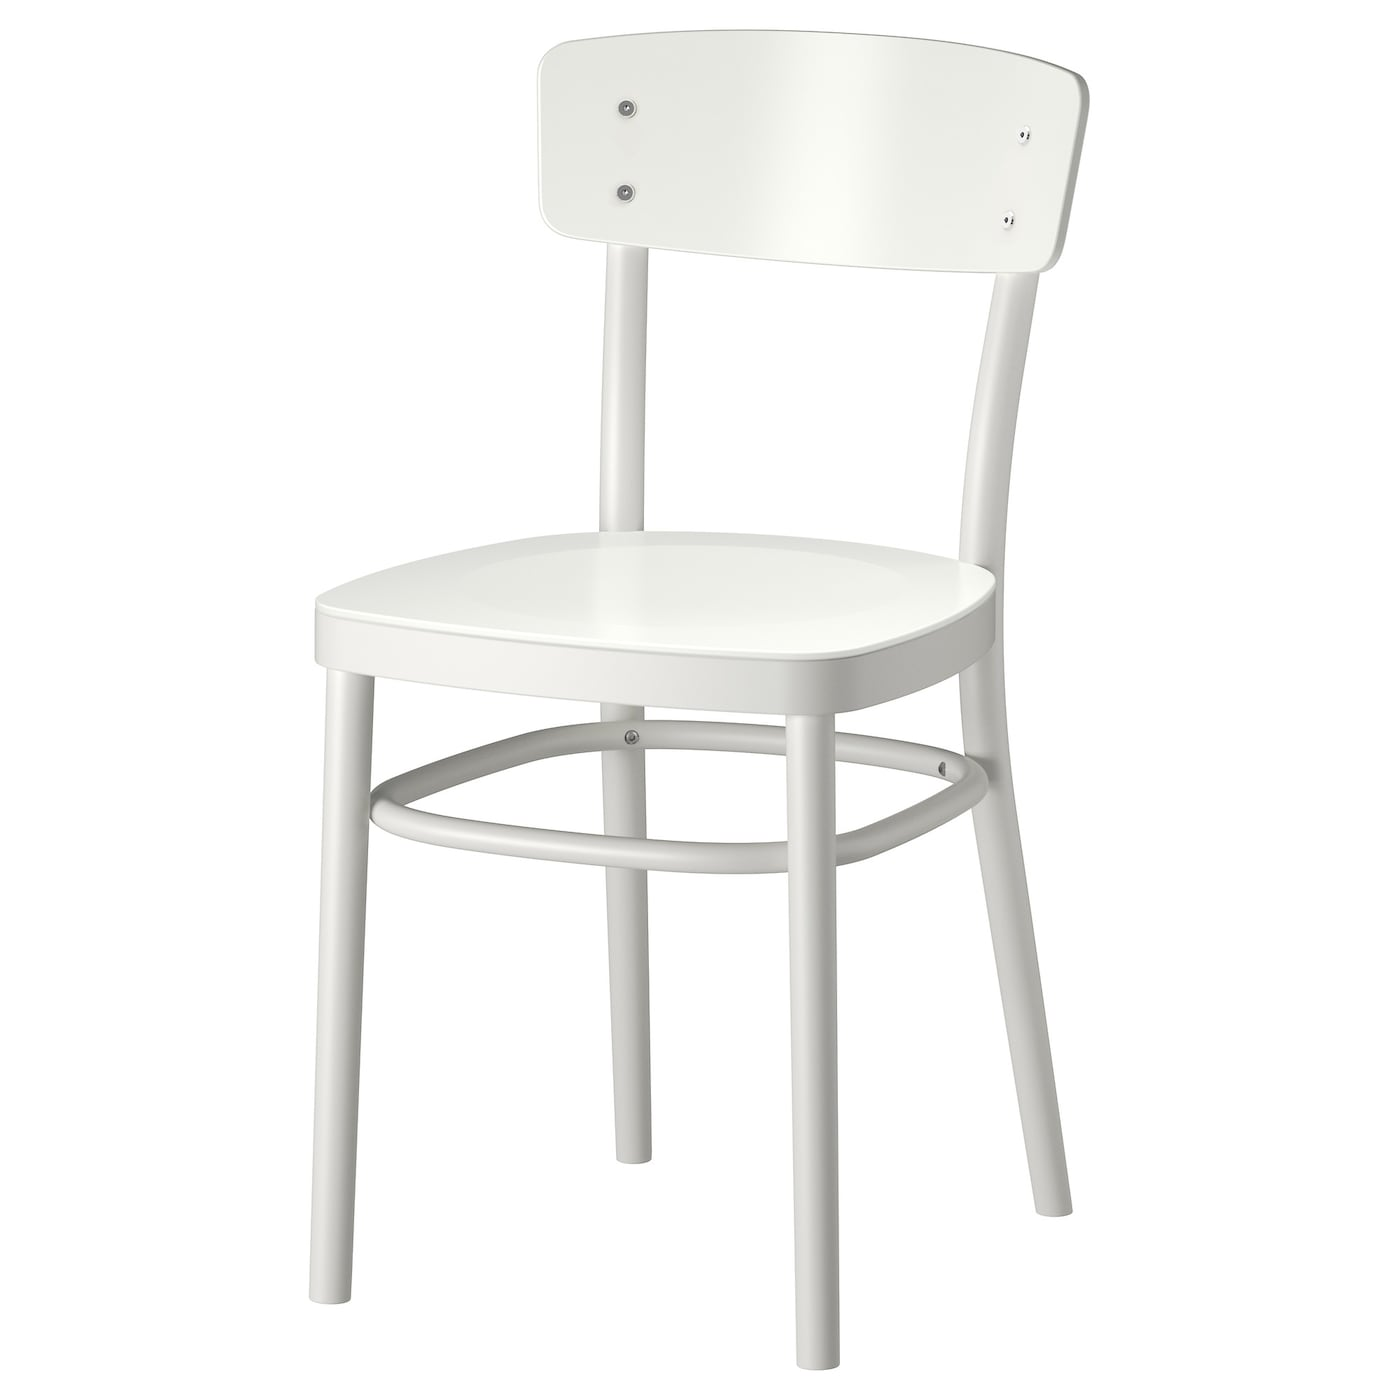 Dining chairs kitchen chairs ikea - Ikea sedie impilabili ...